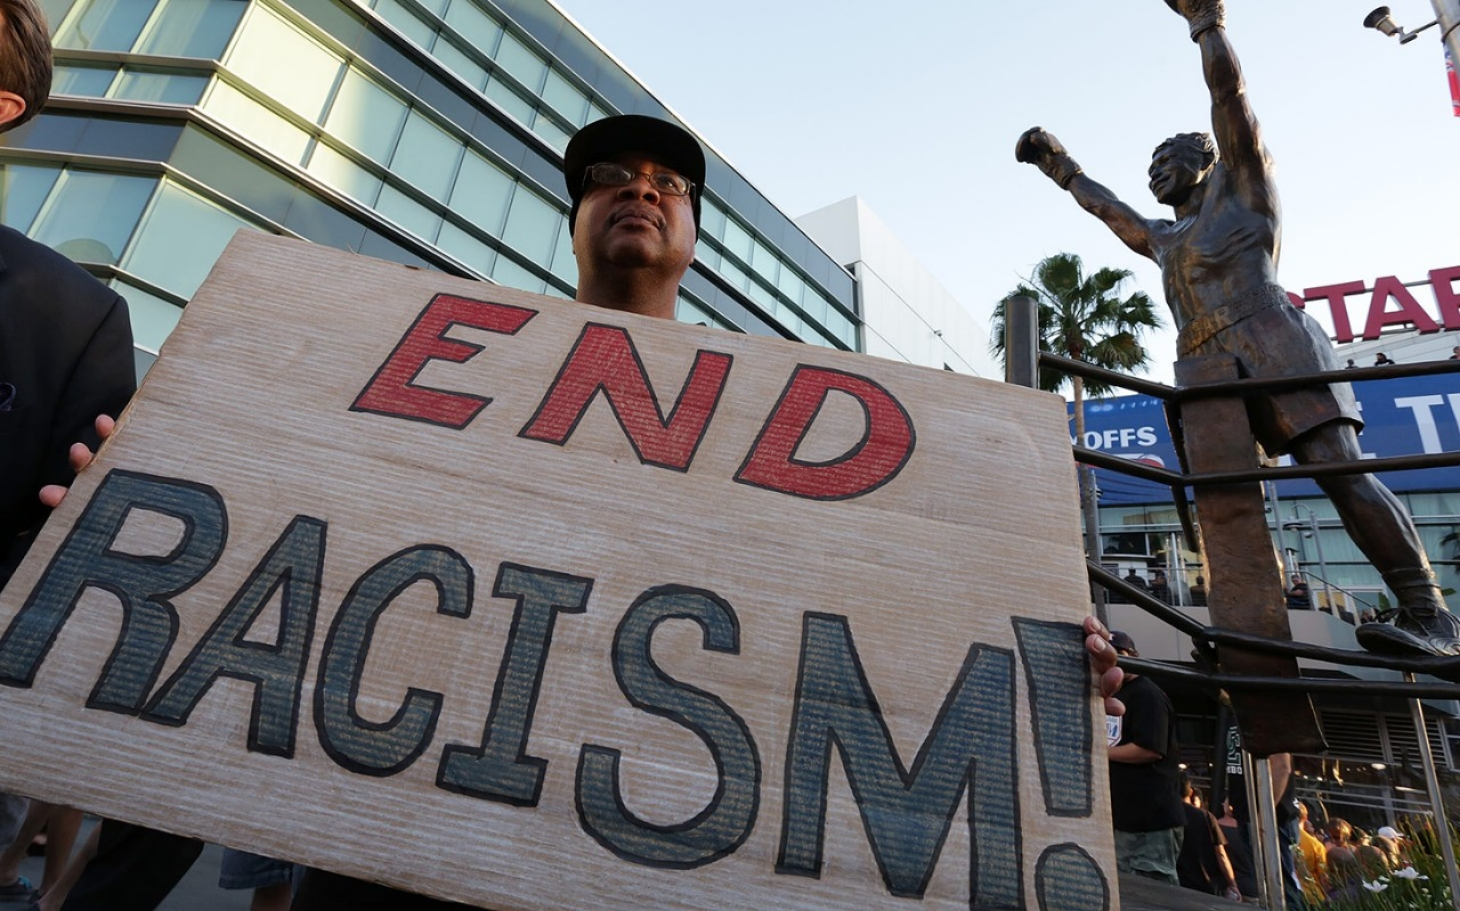 headlineImage.adapt_.1460.high_.us_reports_us_racism_a.1410204384280